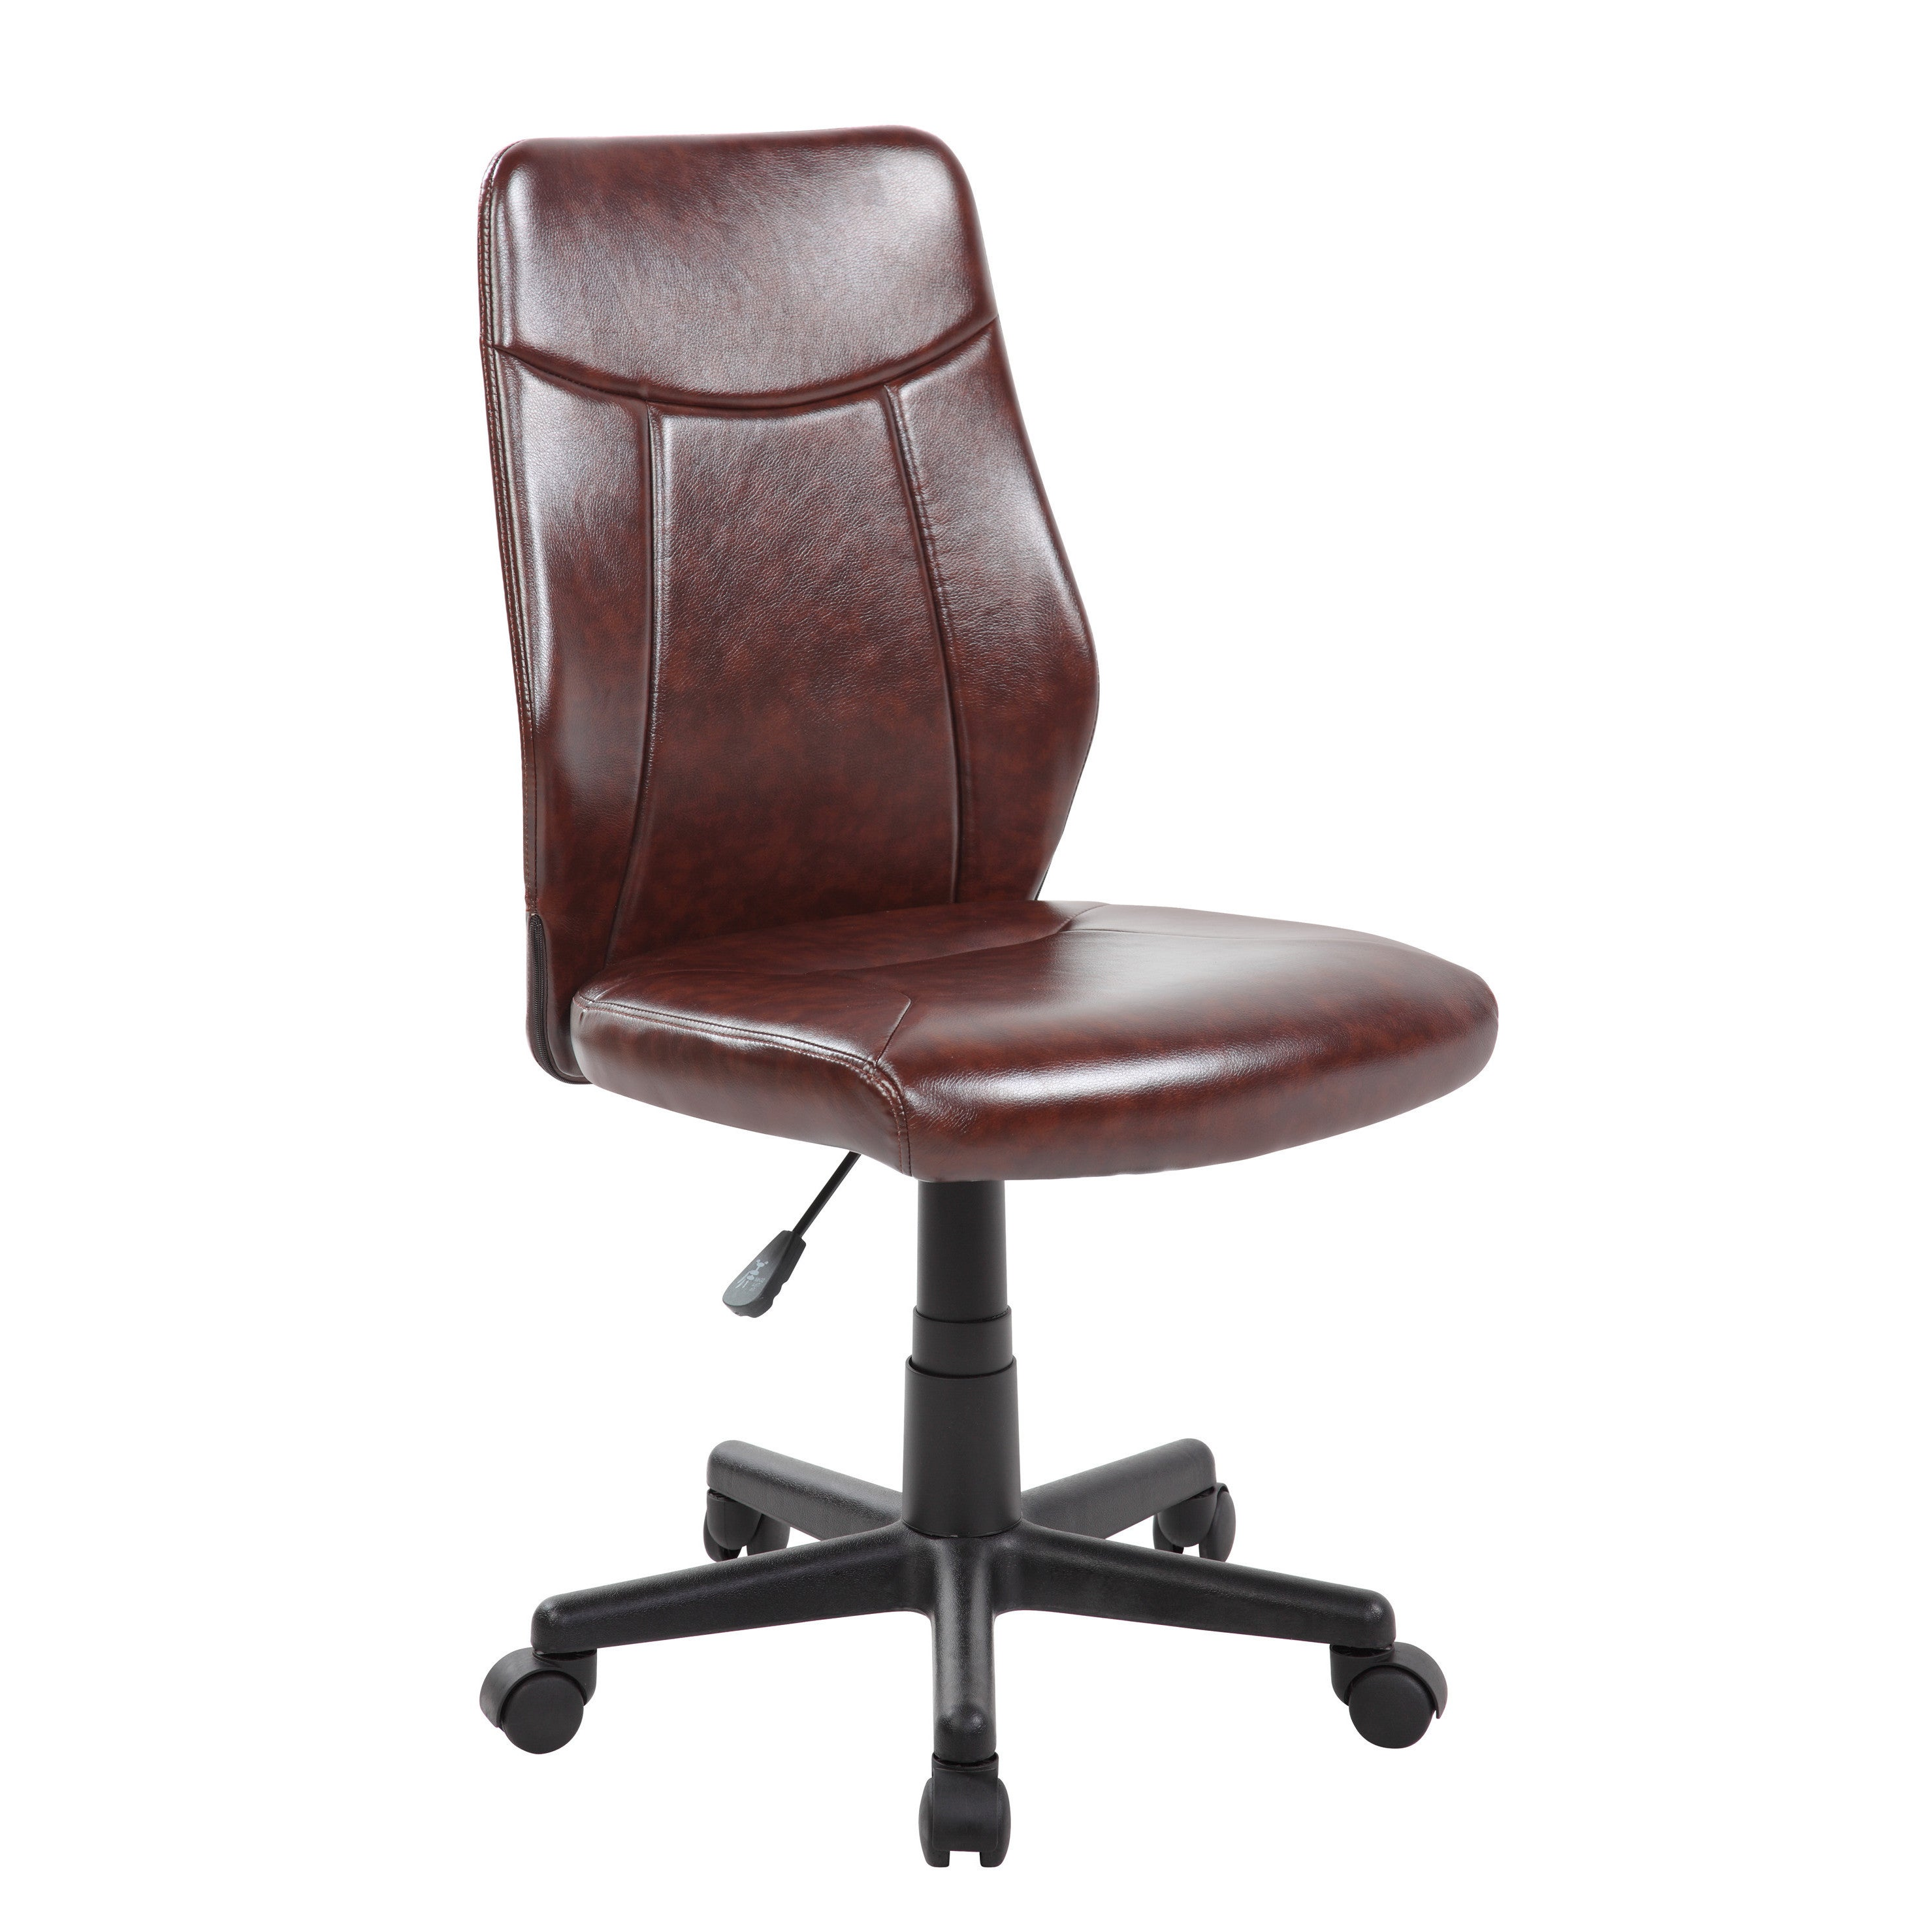 computer ergonomic high executive mesh office seat back breathable comfortable pin chair desk alternative bungee leather